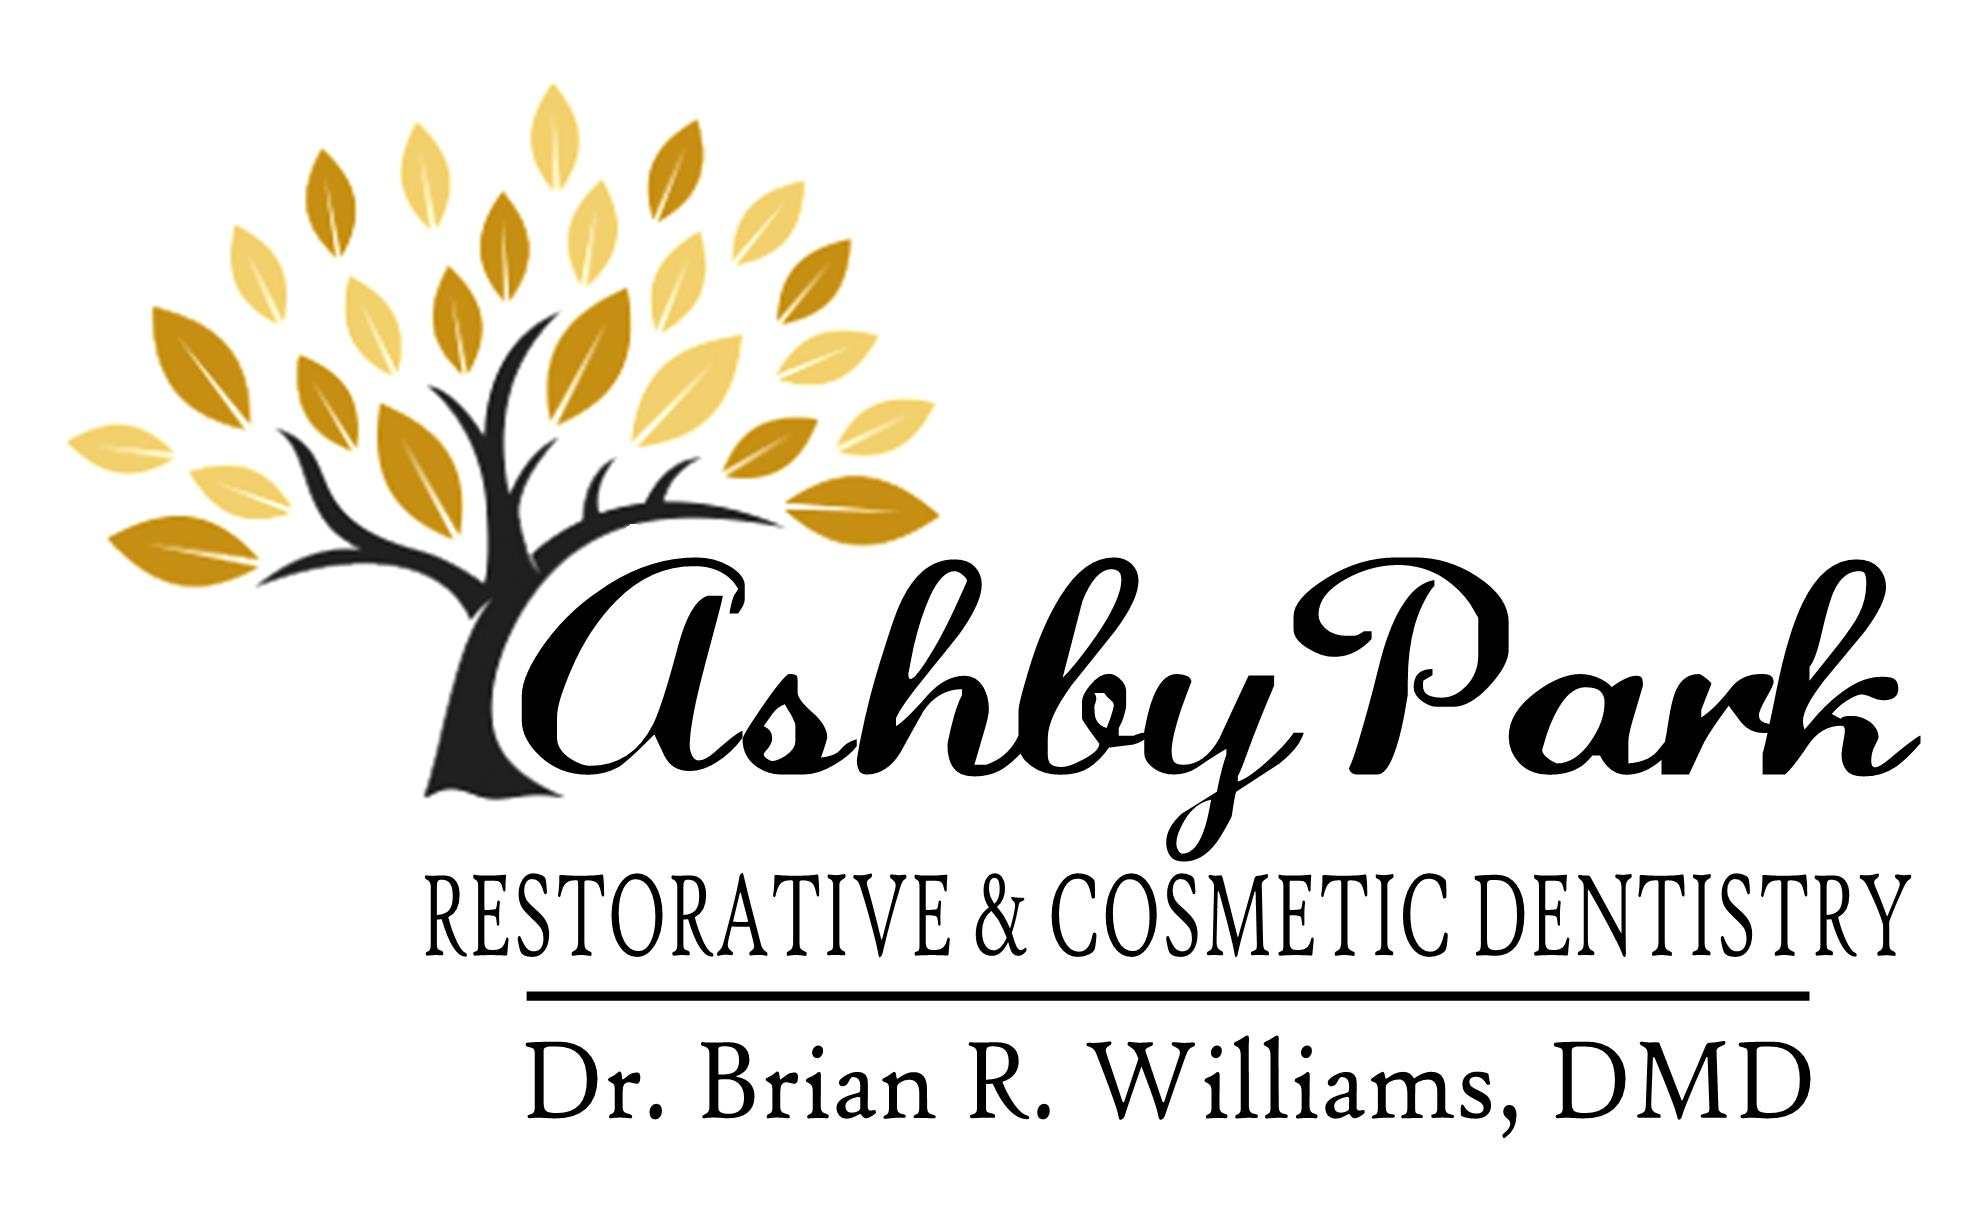 LOGO / Ashby Park Restorative & Cosmetic Dentistry